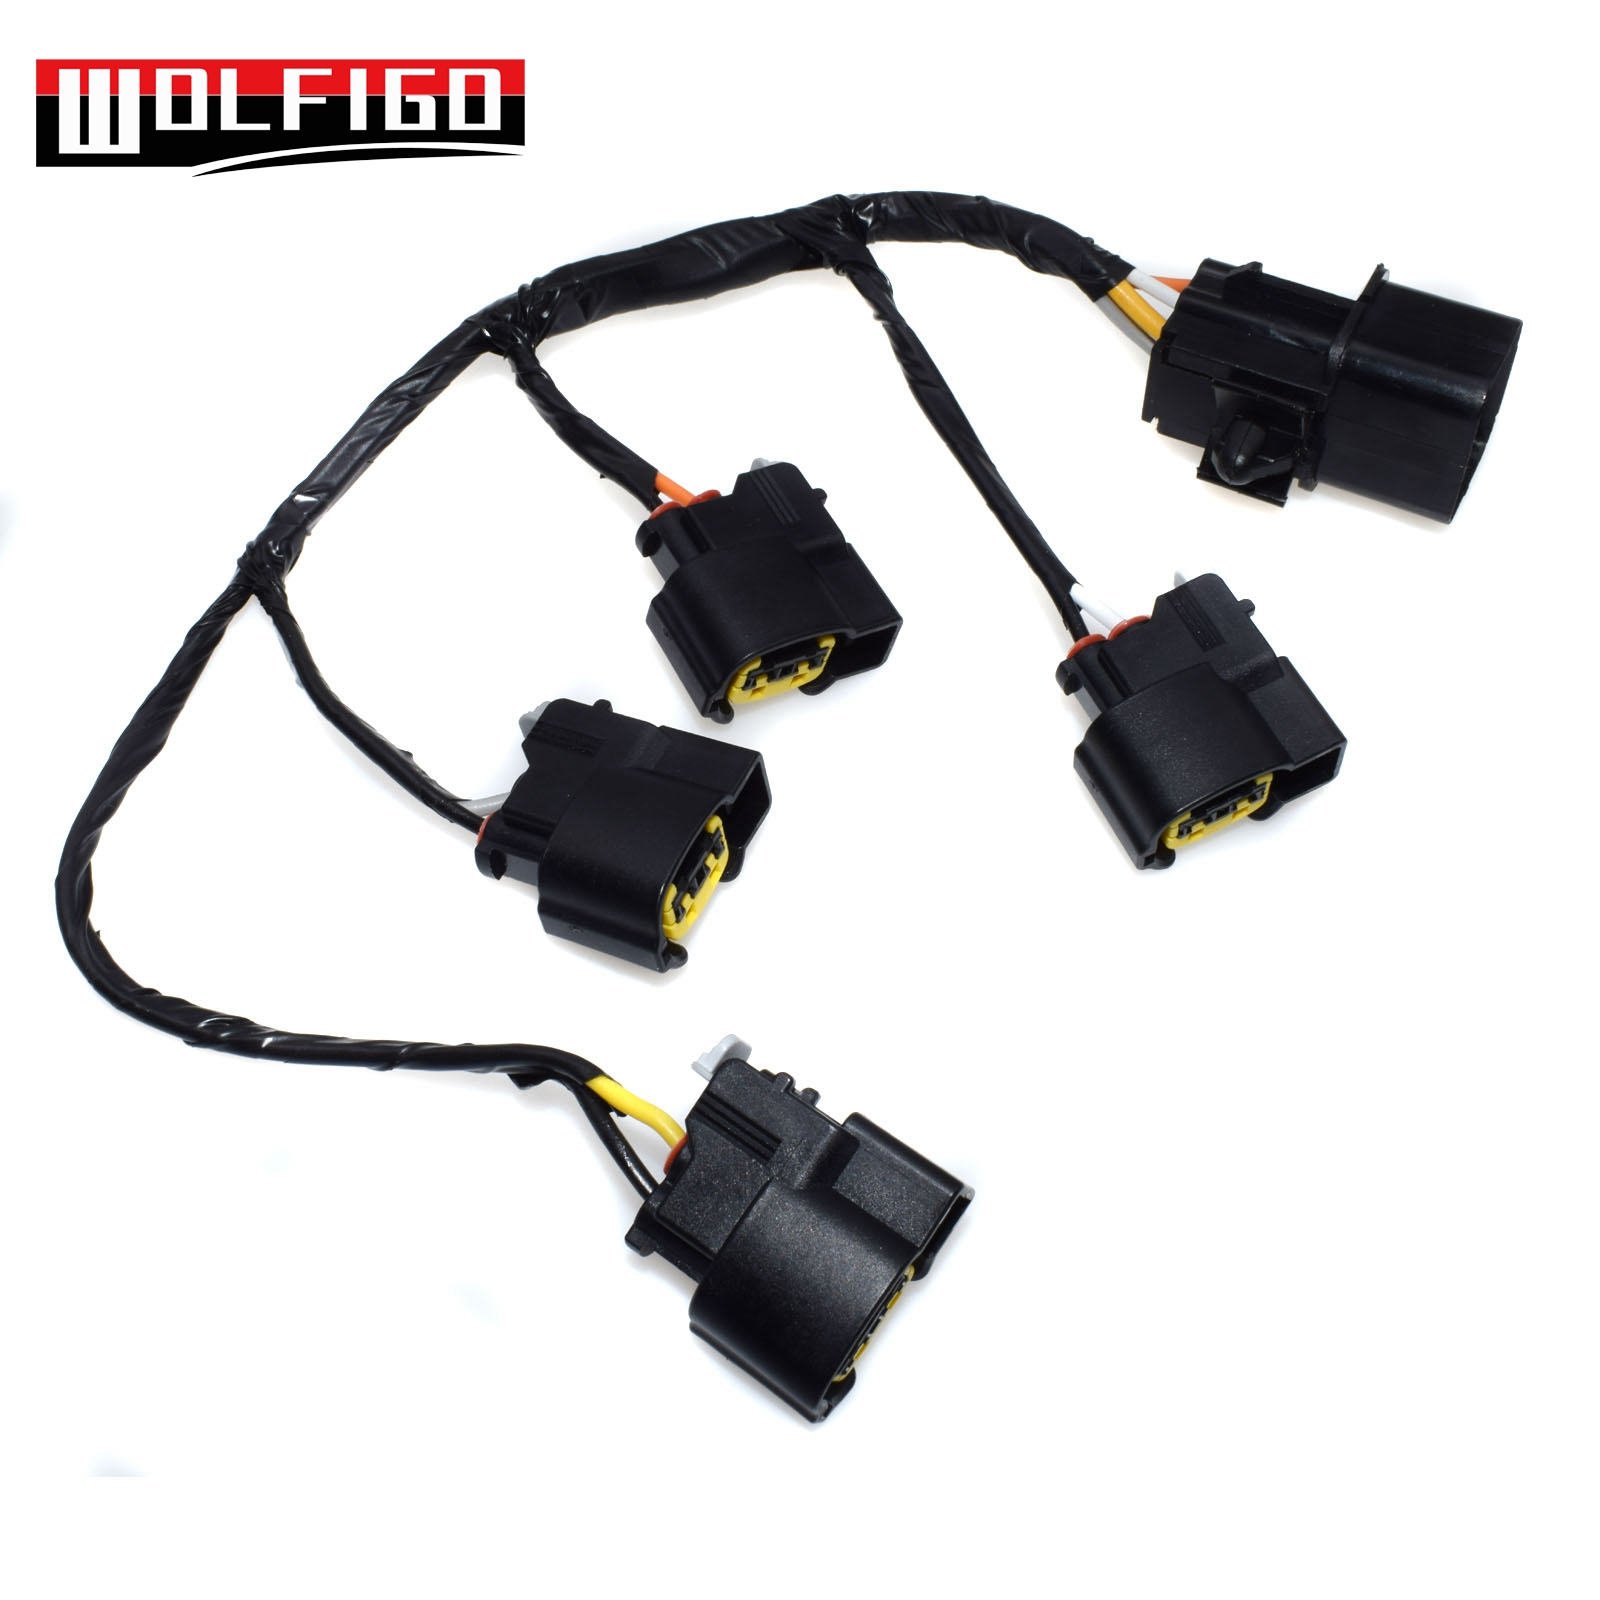 Hyundai Veloster Wiring Harness Part Diagrams Diagram Wolfigo New Ignition Coil Wire For Kia Rio 16l 273502b000